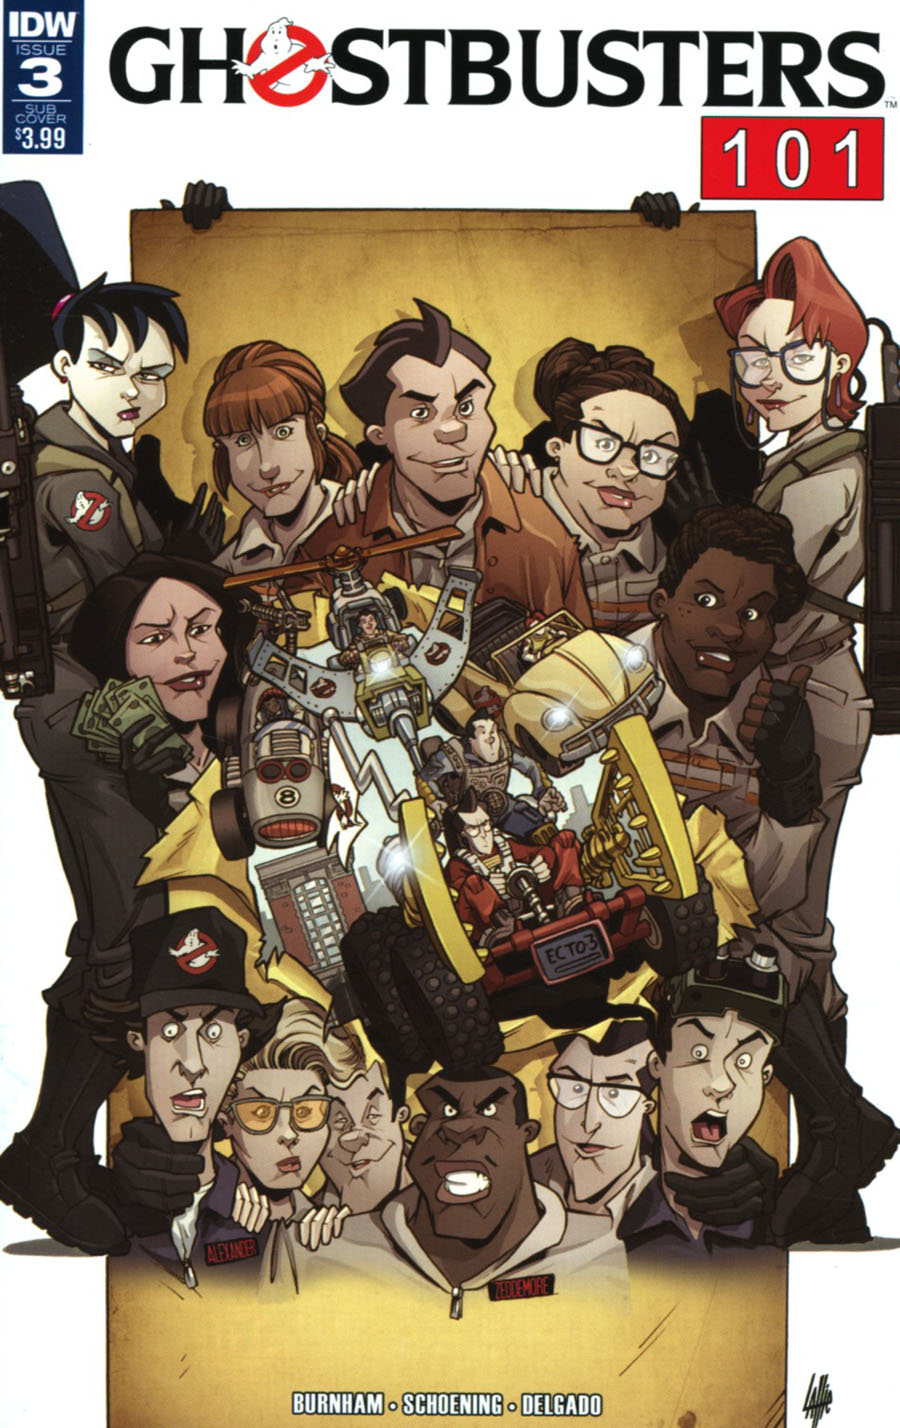 Ghostbusters 101 #3 Cover B Variant Tim Lattie Subscription Cover